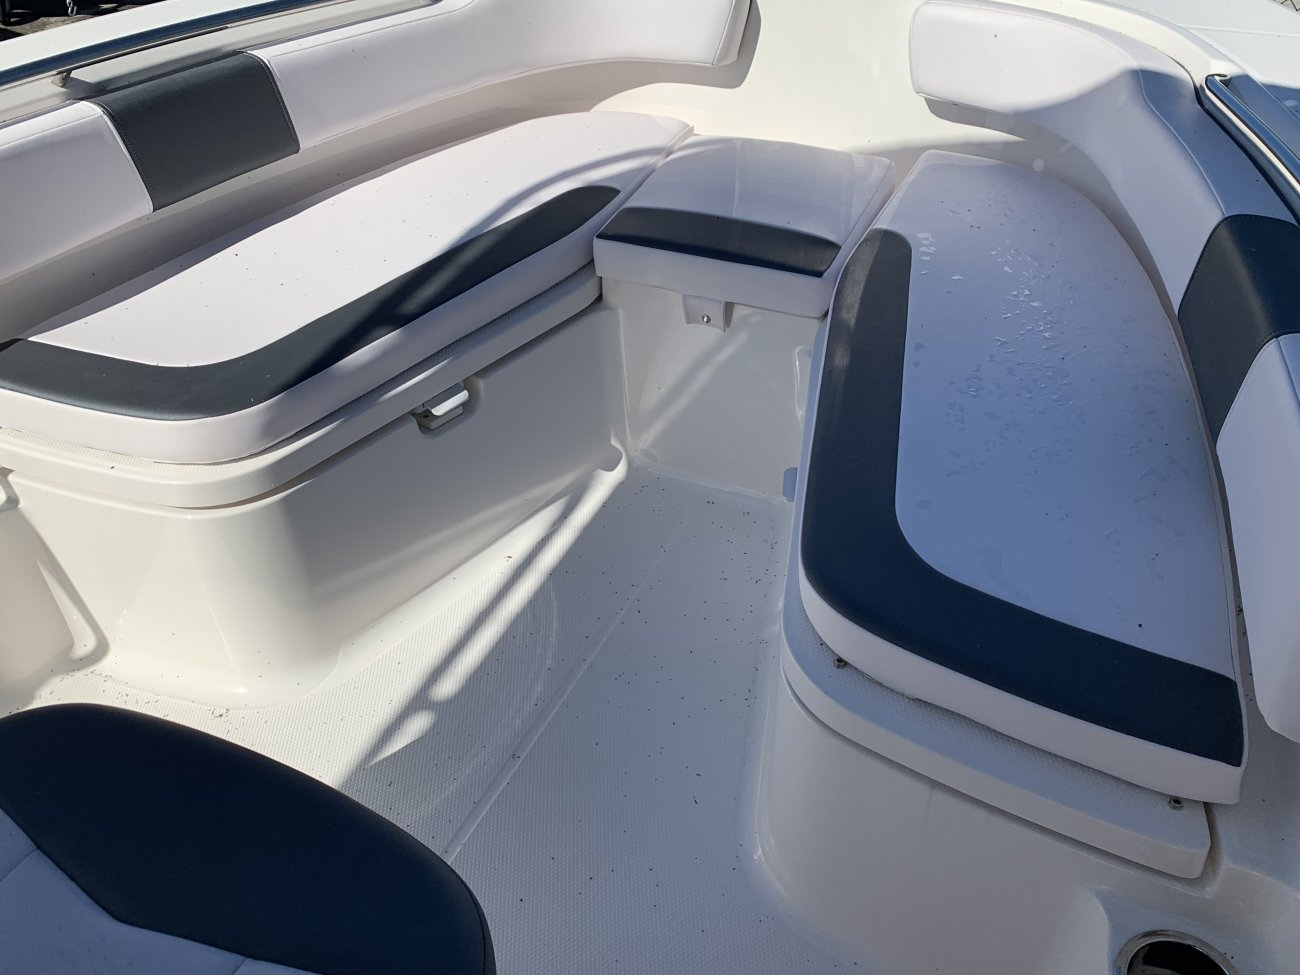 A 200 Center Console is a Power and could be classed as a Center Console, Fish and Ski, Freshwater Fishing, High Performance, Saltwater Fishing, Runabout,  or, just an overall Great Boat!